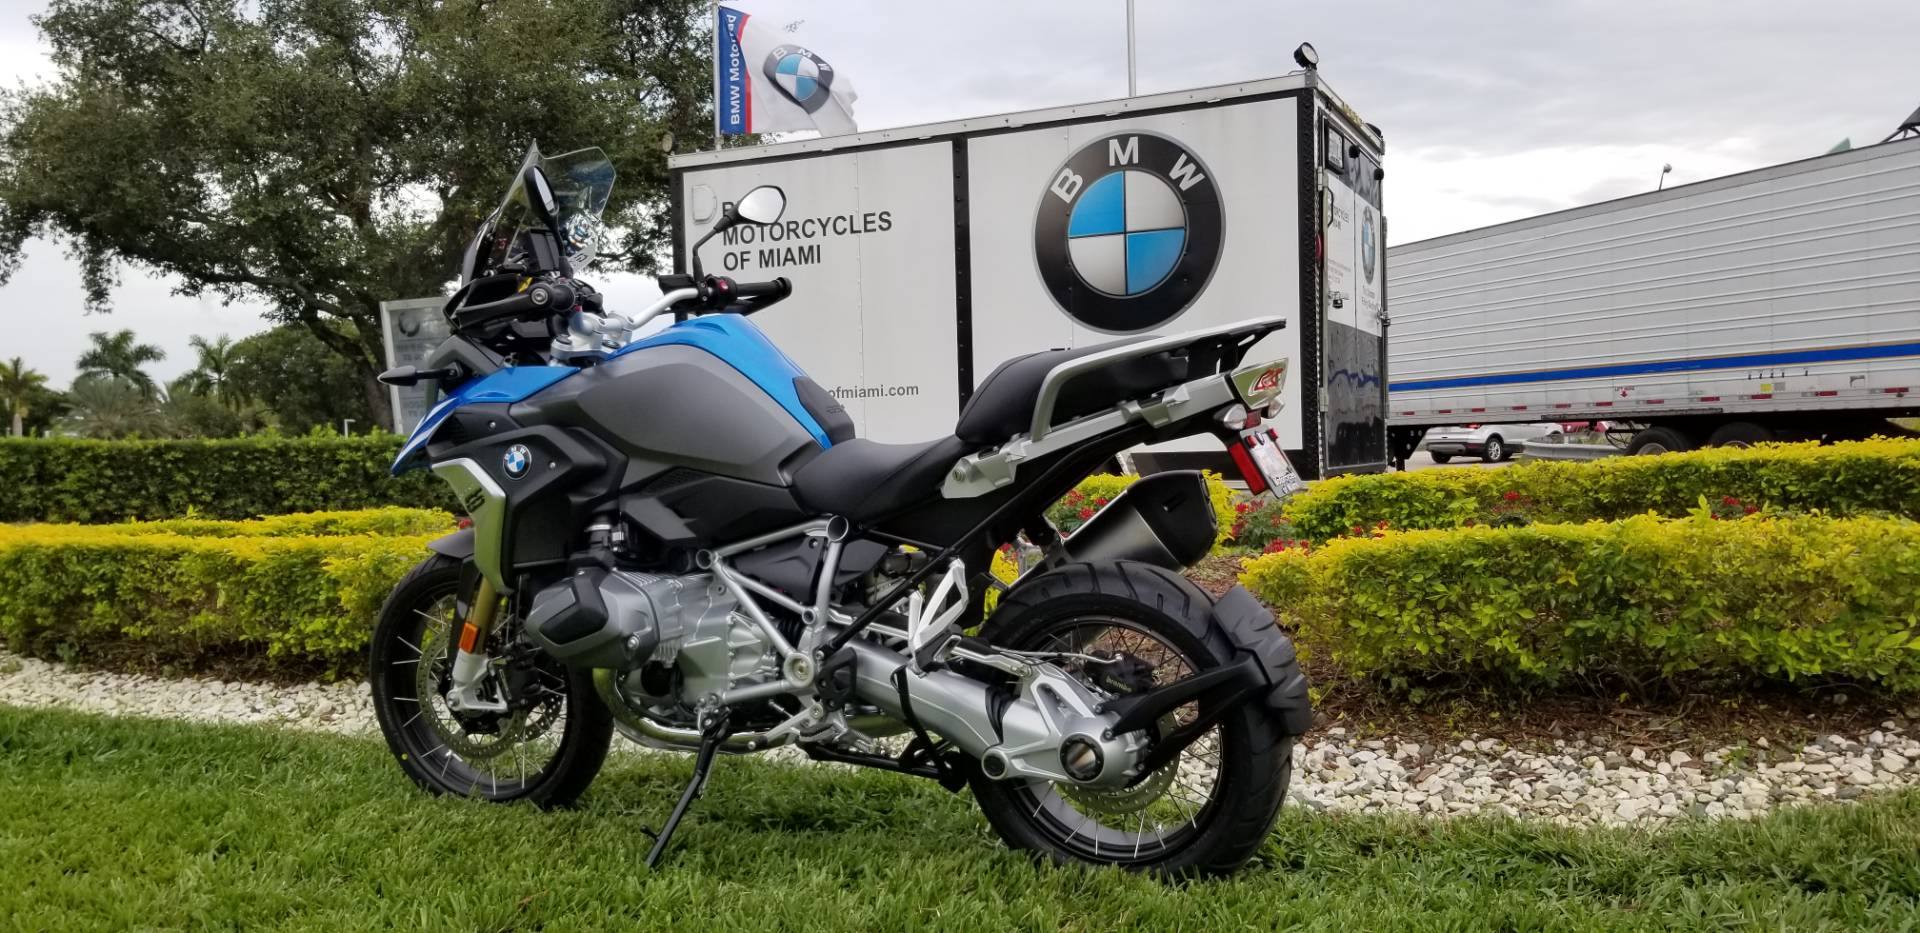 New 2019 BMW R 1250 GS for sale, BMW for sale R 1250GS, BMW Motorcycle R1250GS, new BMW 1250GS, R1250GS, BMW. BMW Motorcycles of Miami, Motorcycles of Miami - Photo 18